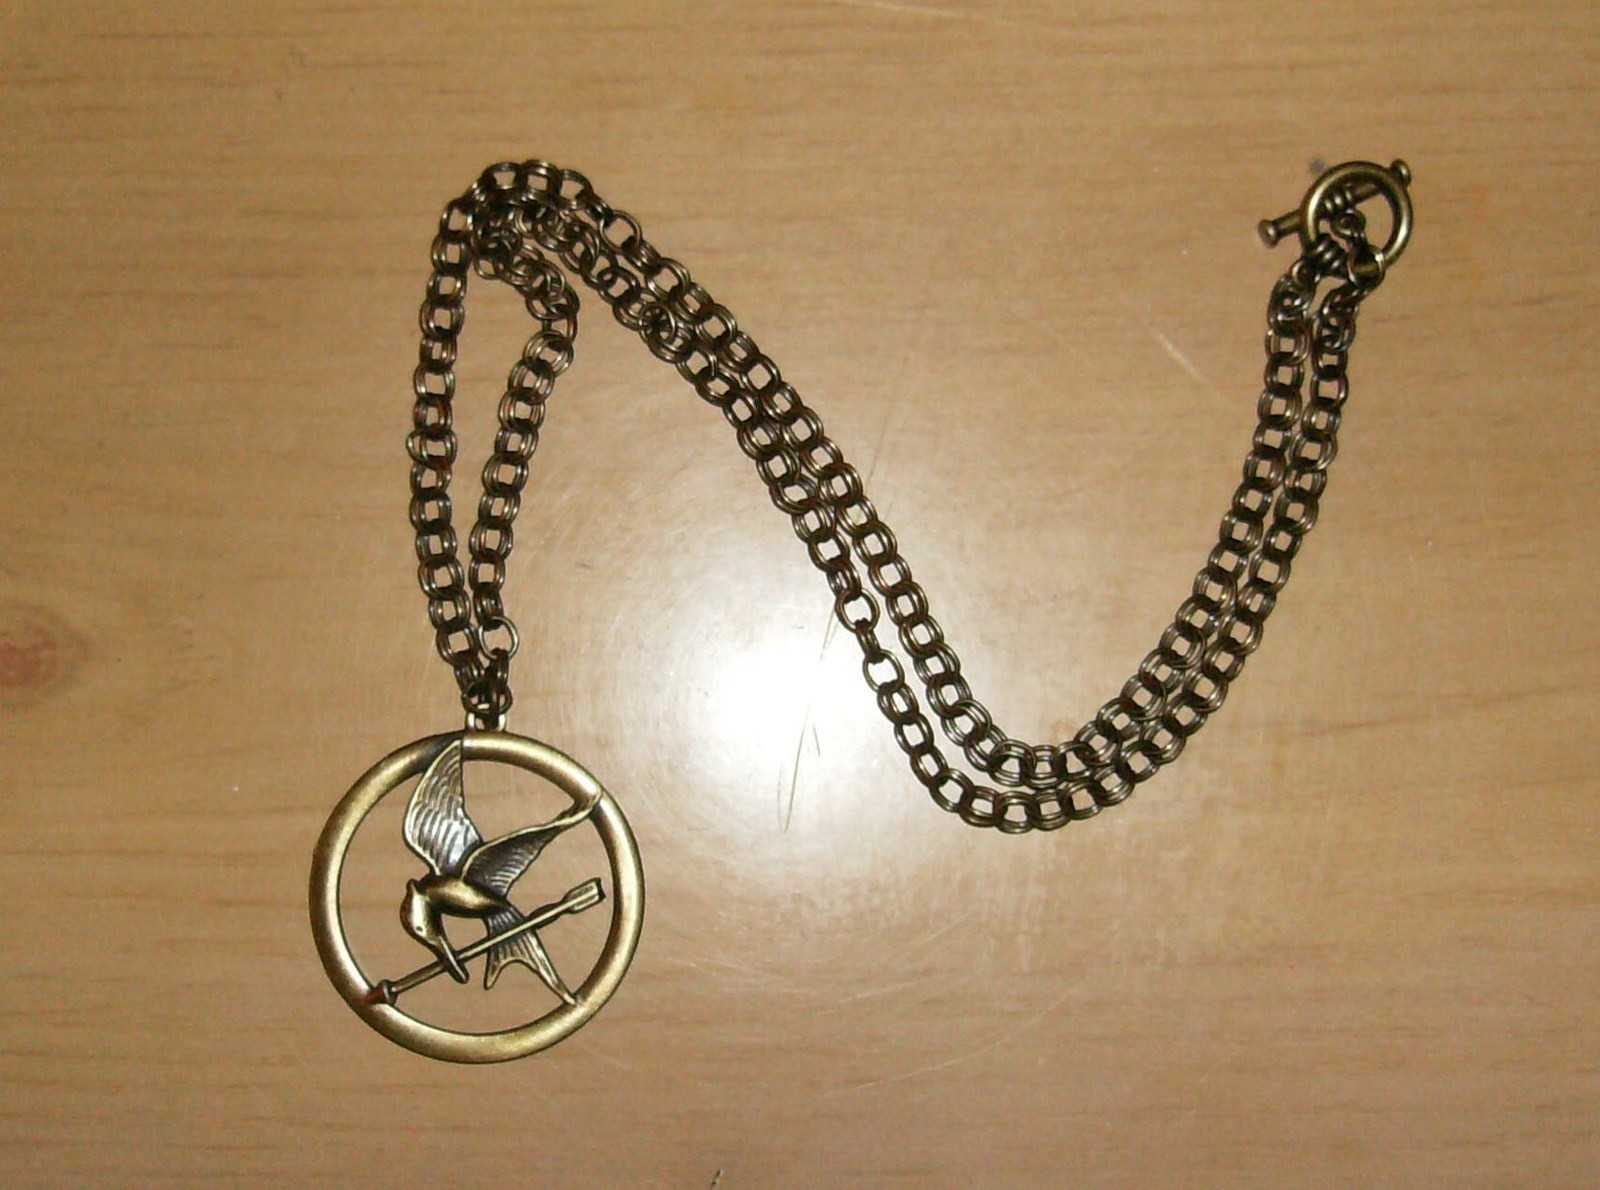 The Hunger Games Mockingjay Pendant Necklace How To Make A Metal Necklace Jewelry Making